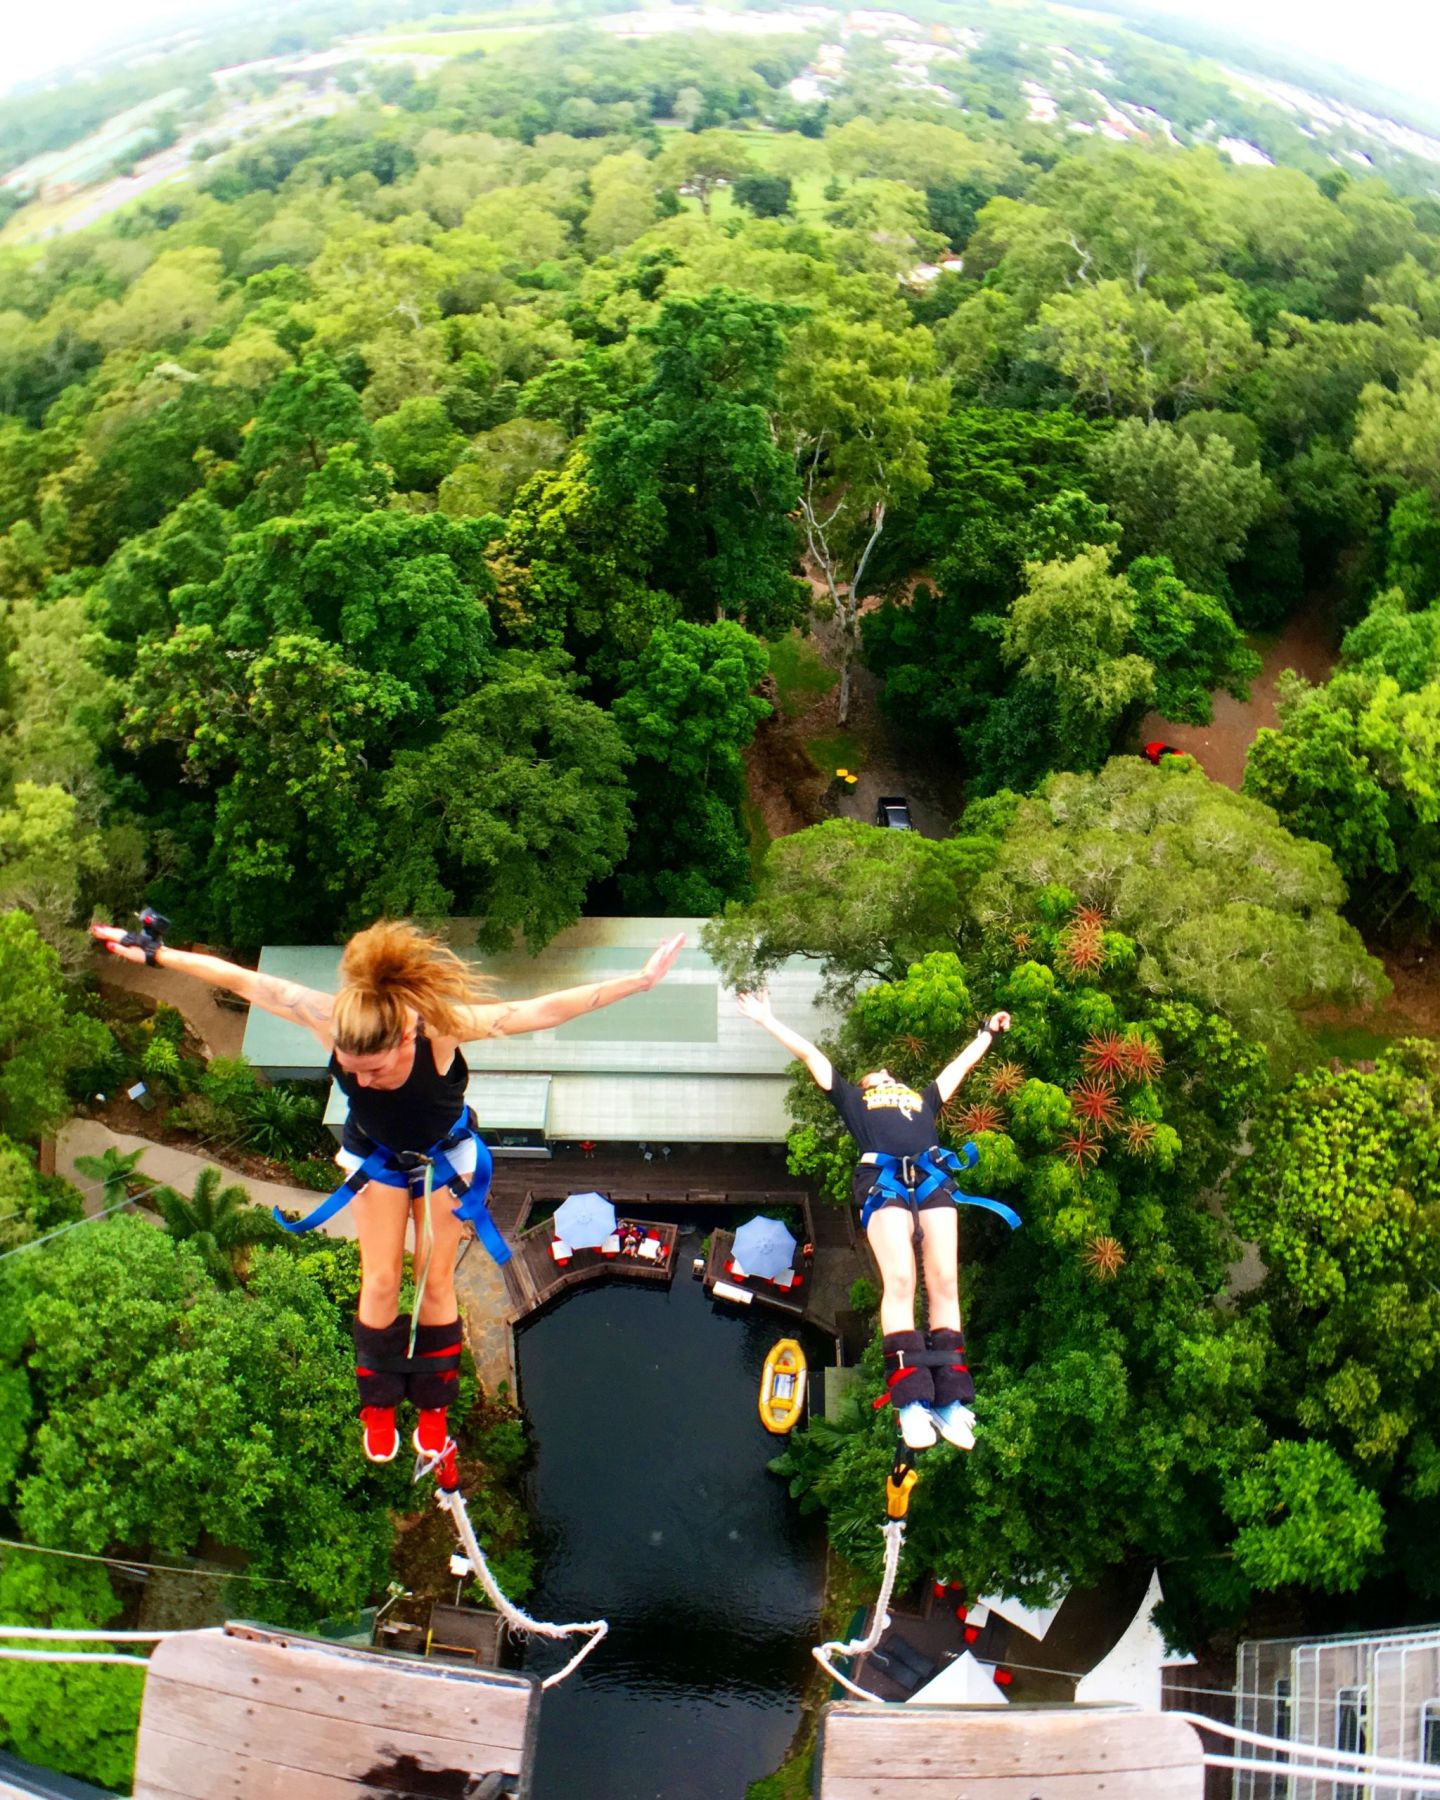 Hitting my 10th bungy jump in 10 years (and reminding myself I only live once!) 🙌